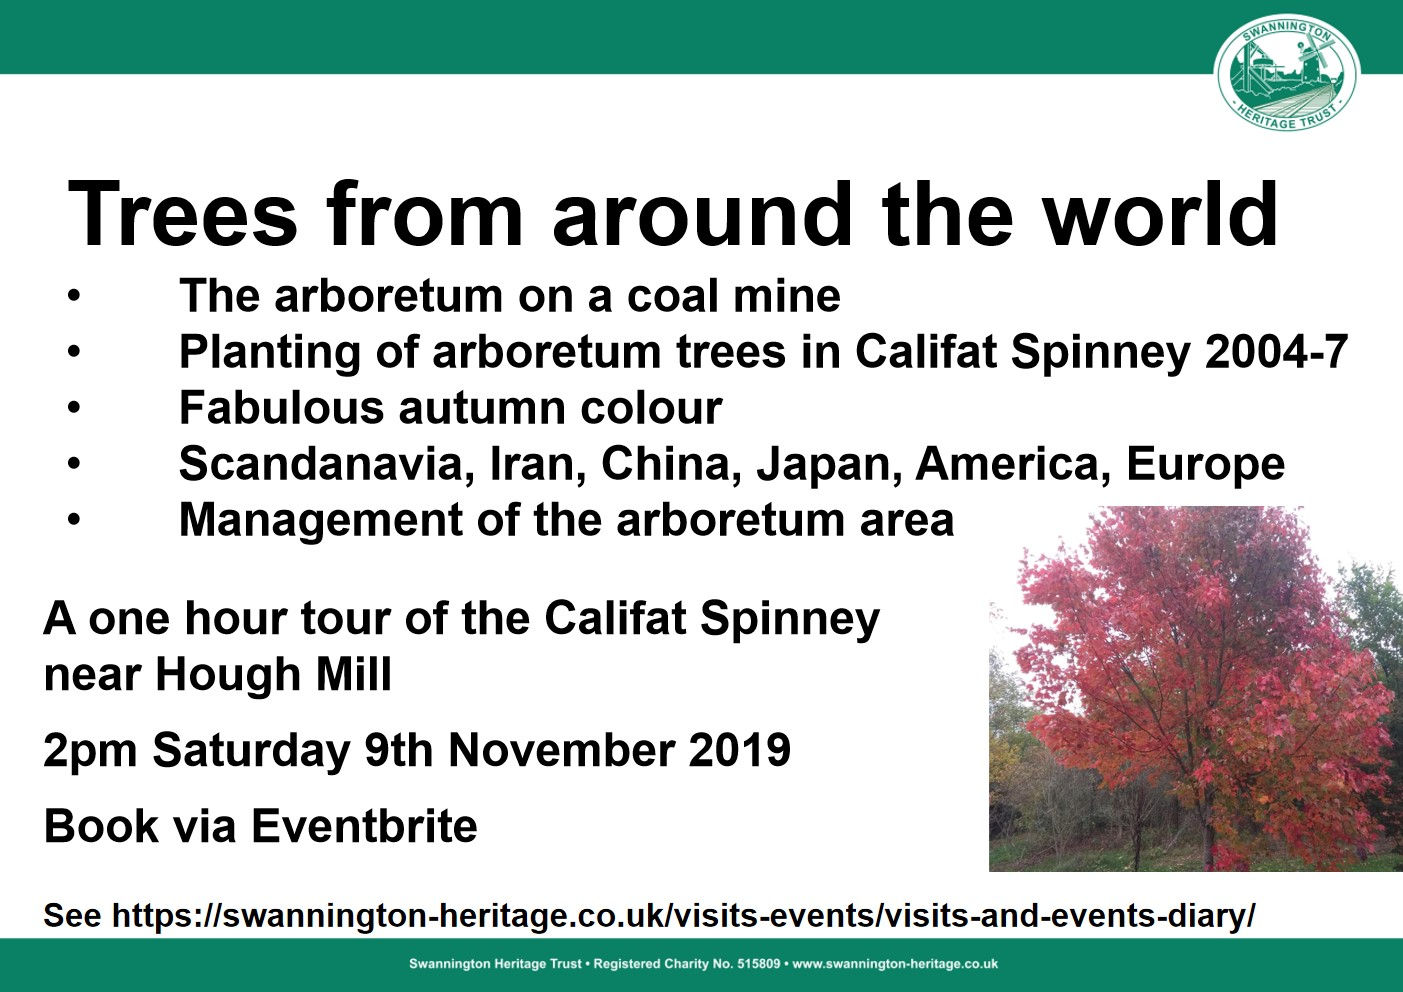 Tour of the arboretum in the Califat Spinney